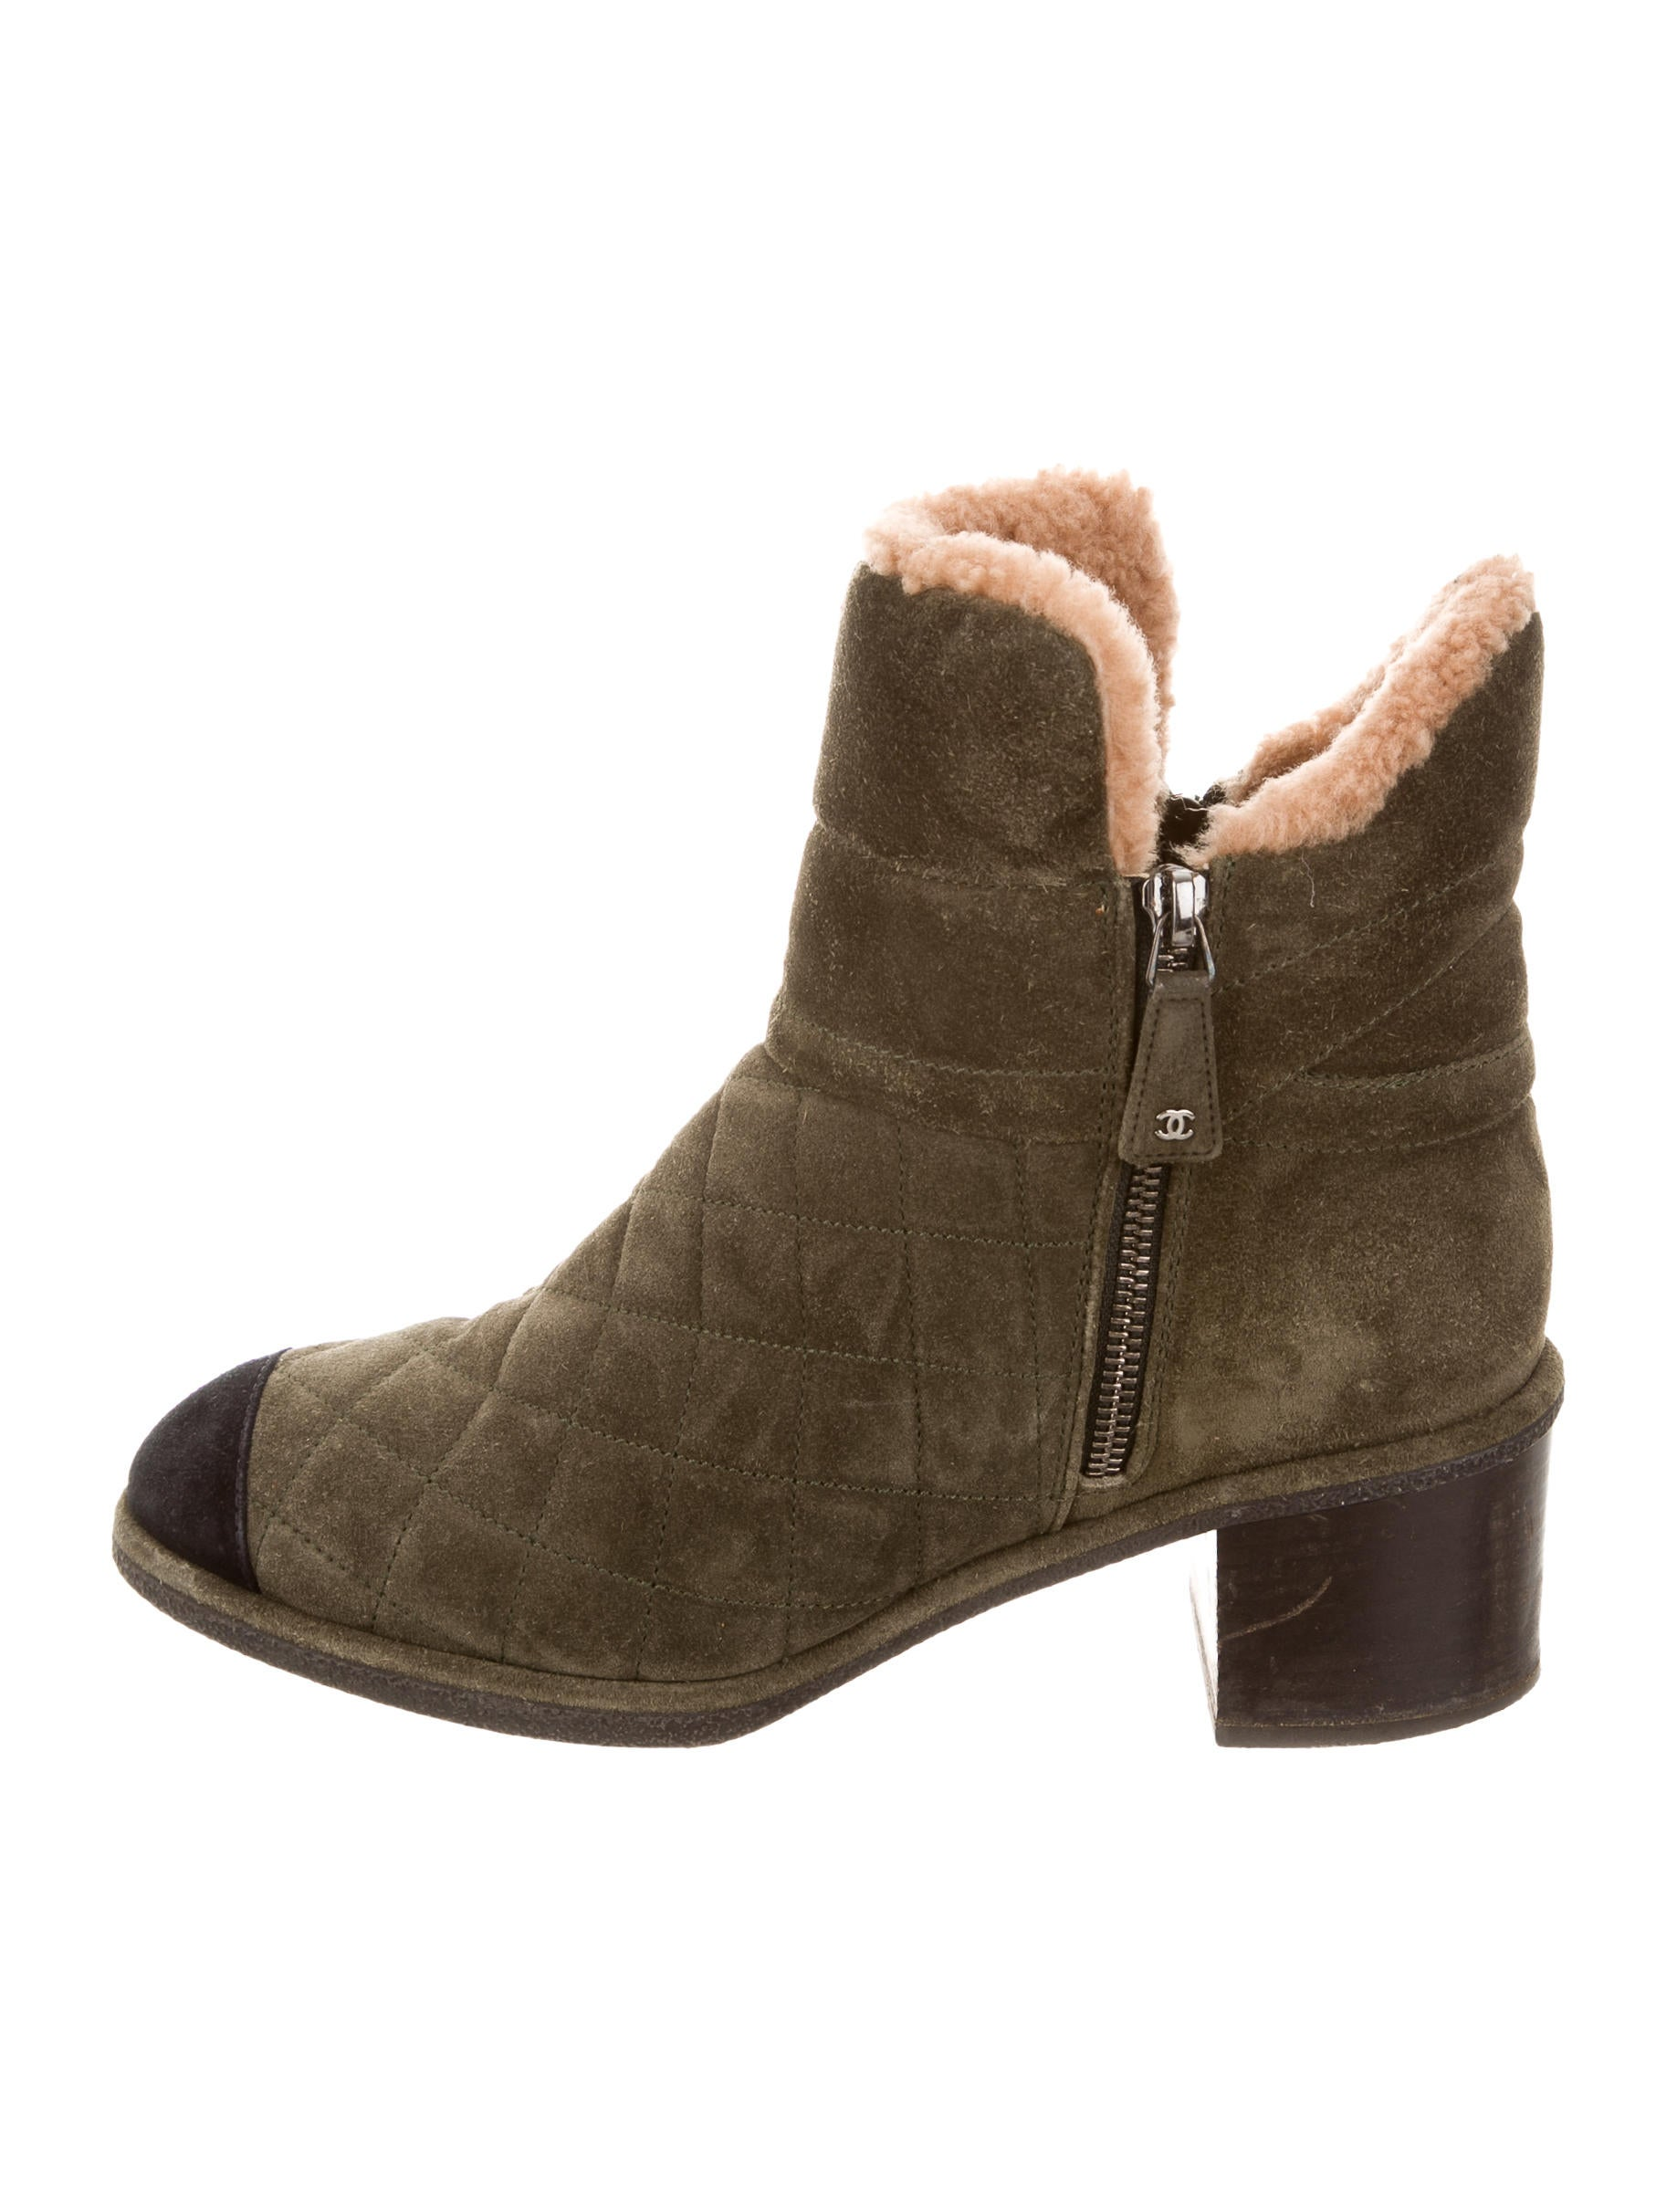 chanel quilted shearling lined ankle boots shoes